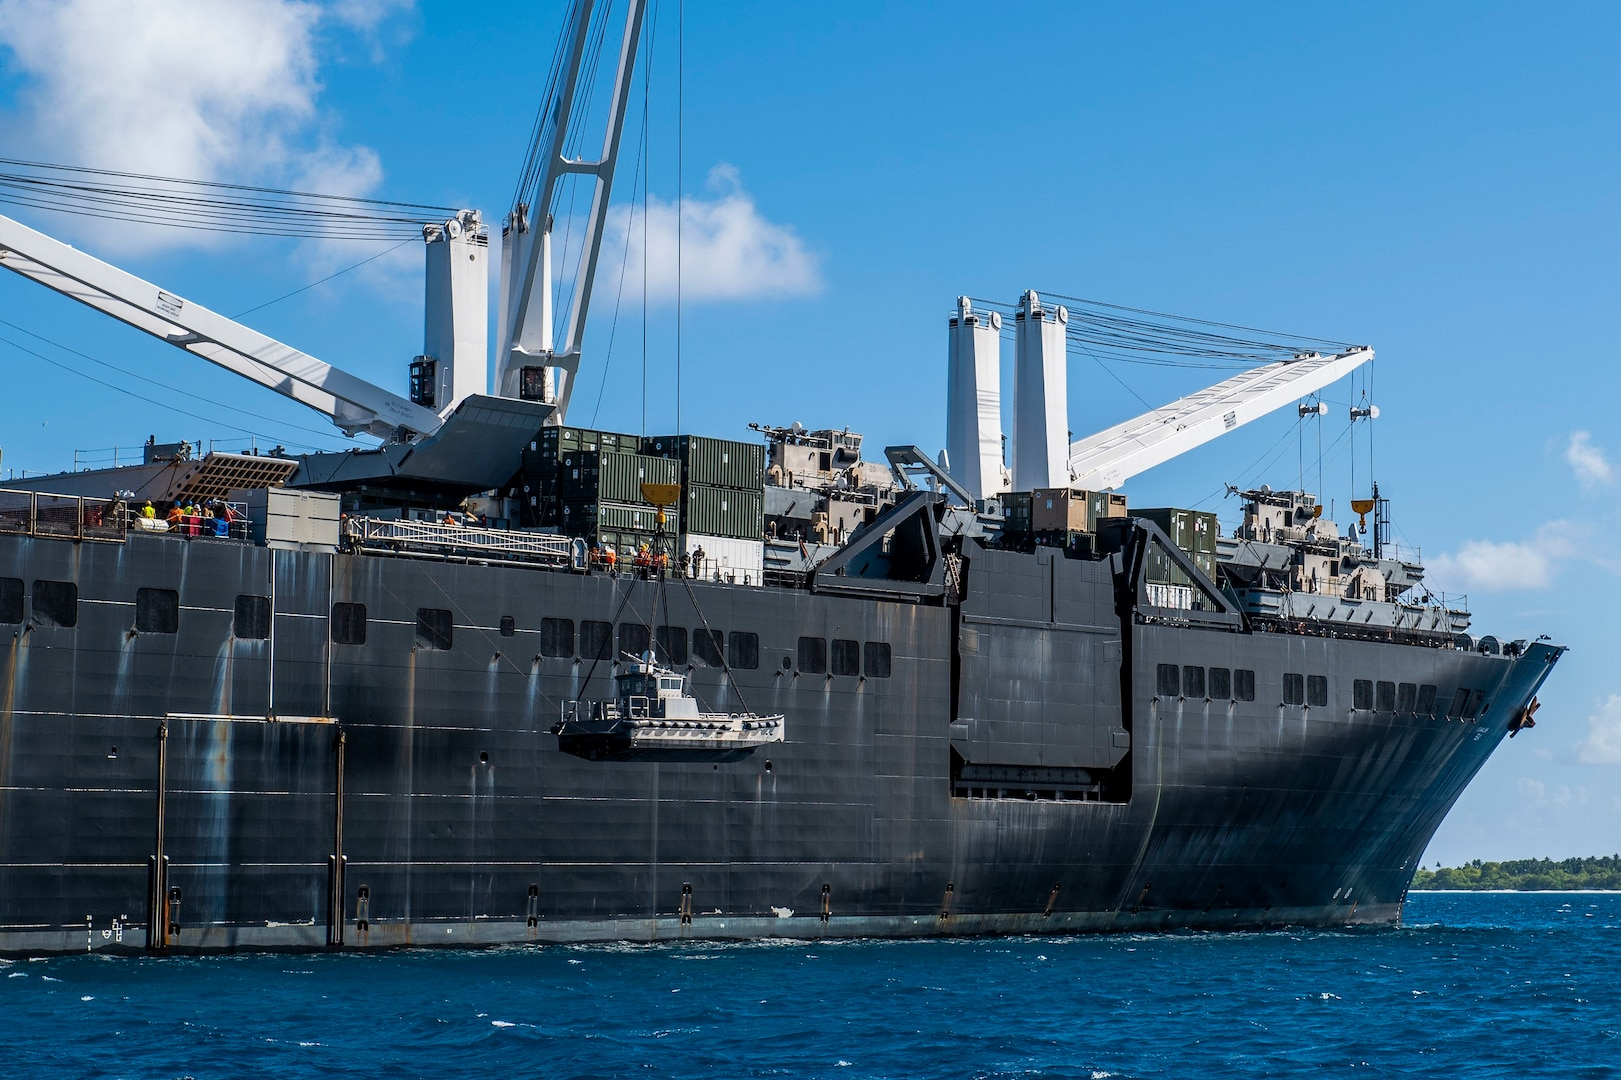 DIEGO GARCIA, British Indian Ocean Territory (November 11, 2019) Sailors lower a maritime prepositioning force utility boat from Military Sealift Command Bob Hope-class roll-on roll-off vehicle cargo ship USNS Seay (T-AKR 302) using a crane during an Improved Navy Lighterage System (INLS) training mission. Navy Cargo Handling Battalion (NCHB) 1, NCHB 8, NCHB 11, NCHB 13, Assault Craft Unit (ACU) 1 and Amphibious Construction Battalion (ACB) 1 are participating in the INLS training mission under the direction of Commander, Task Force (CTF) 75 in preparation for upcoming joint cargo handling exercise Native Fury 2020. (U.S. Navy photo by Mass Communication Specialist 1st Class Nathan Carpenter)